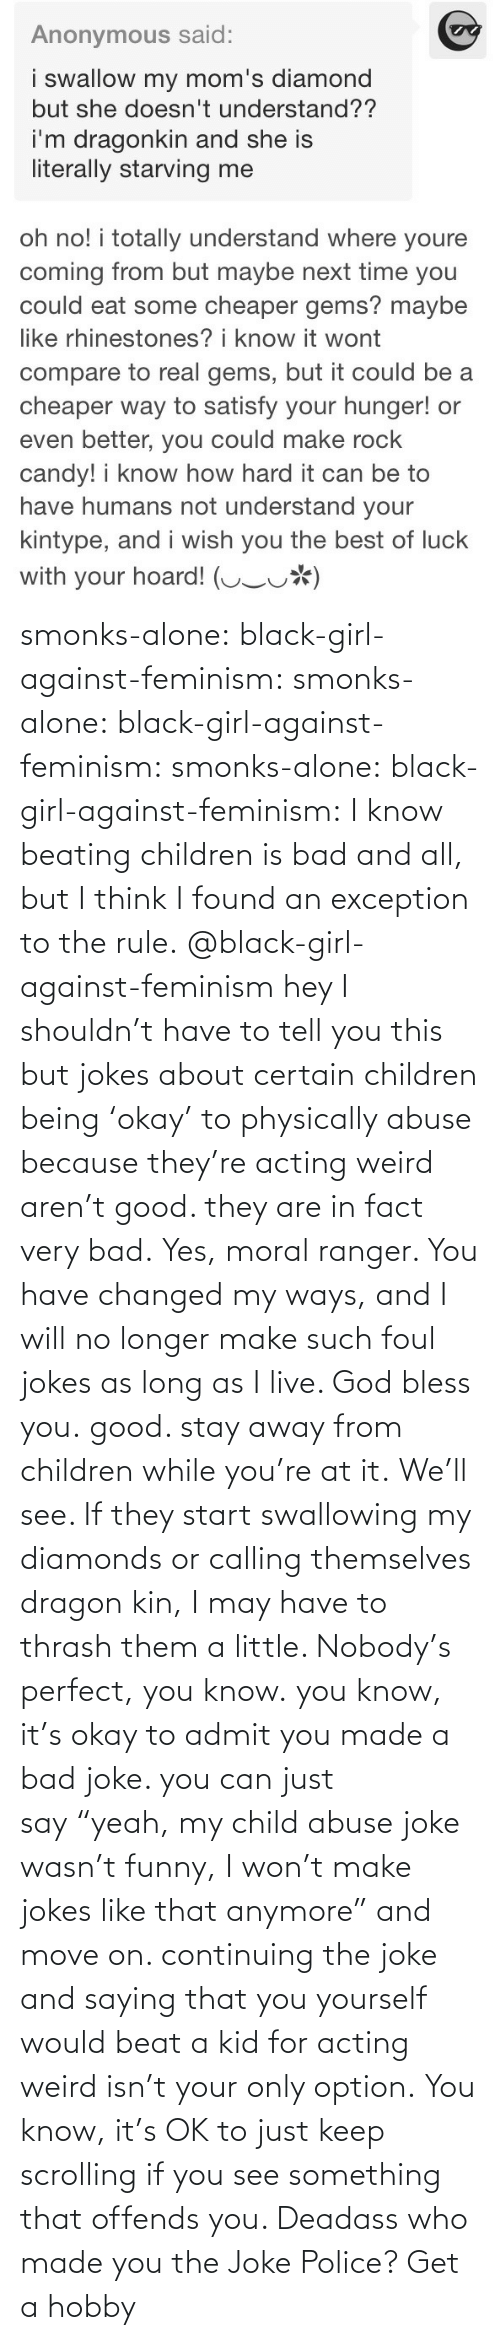 "A Bad Joke: smonks-alone:  black-girl-against-feminism: smonks-alone:  black-girl-against-feminism:  smonks-alone:  black-girl-against-feminism: I know beating children is bad and all, but I think I found an exception to the rule. @black-girl-against-feminism hey I shouldn't have to tell you this but jokes about certain children being 'okay' to physically abuse because they're acting weird aren't good. they are in fact very bad.  Yes, moral ranger. You have changed my ways, and I will no longer make such foul jokes as long as I live. God bless you.  good. stay away from children while you're at it.  We'll see. If they start swallowing my diamonds or calling themselves dragon kin, I may have to thrash them a little. Nobody's perfect, you know.  you know, it's okay to admit you made a bad joke. you can just say ""yeah, my child abuse joke wasn't funny, I won't make jokes like that anymore"" and move on. continuing the joke and saying that you yourself would beat a kid for acting weird isn't your only option.   You know, it's OK to just keep scrolling if you see something that offends you. Deadass who made you the Joke Police? Get a hobby"